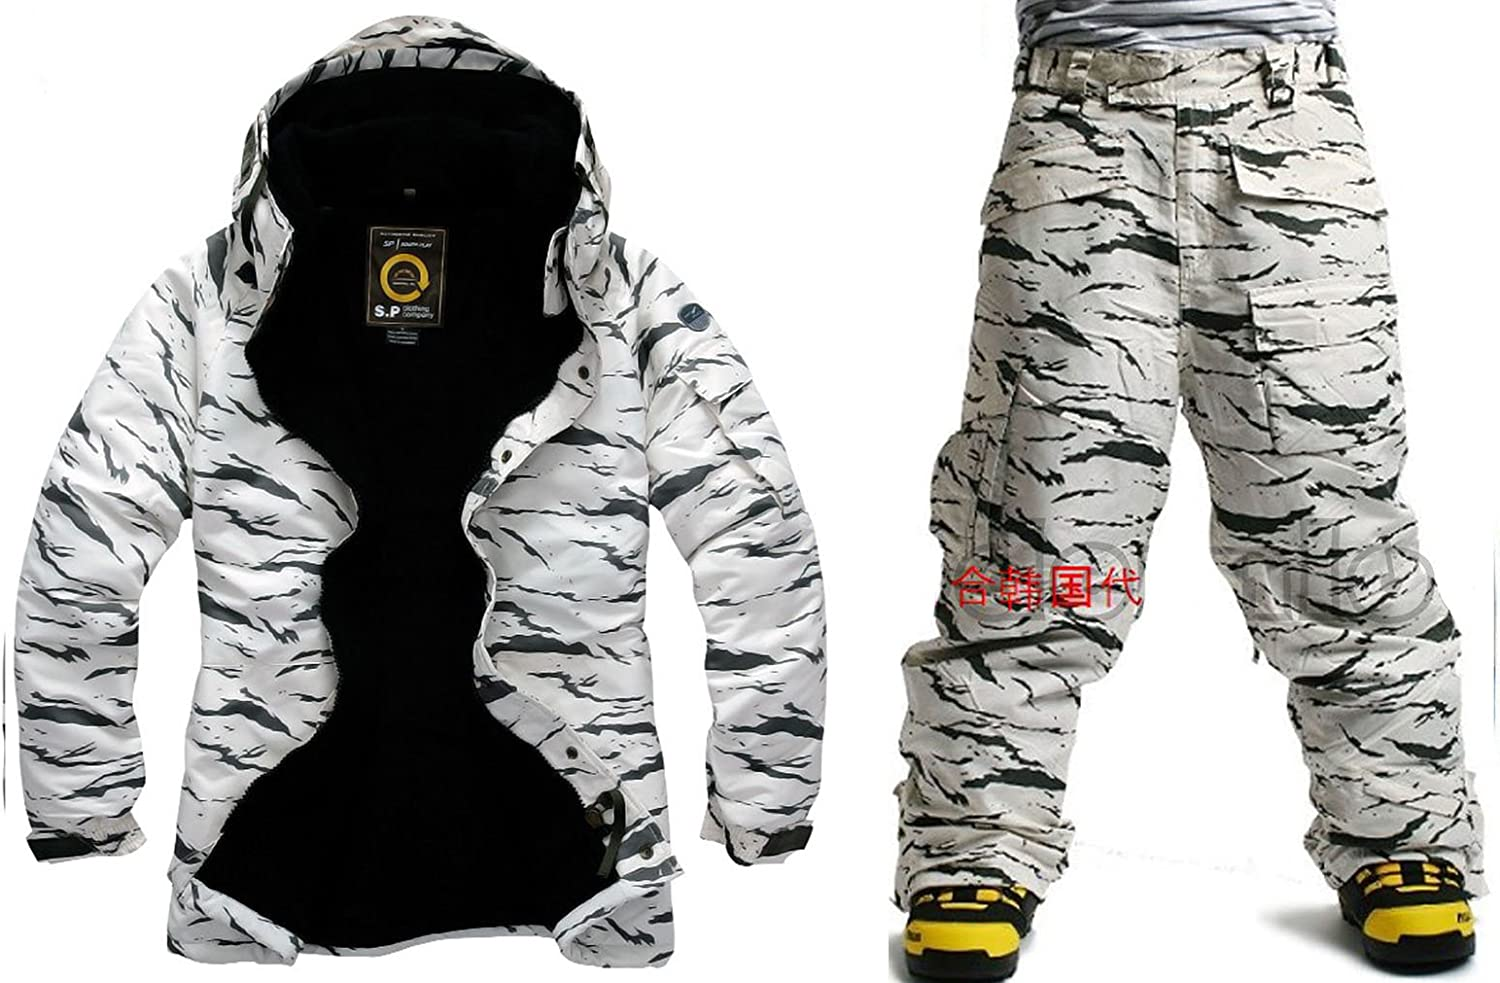 Southplay Mens Waterproof White Camo Military Ski-Snowboard Jacket+Pants set